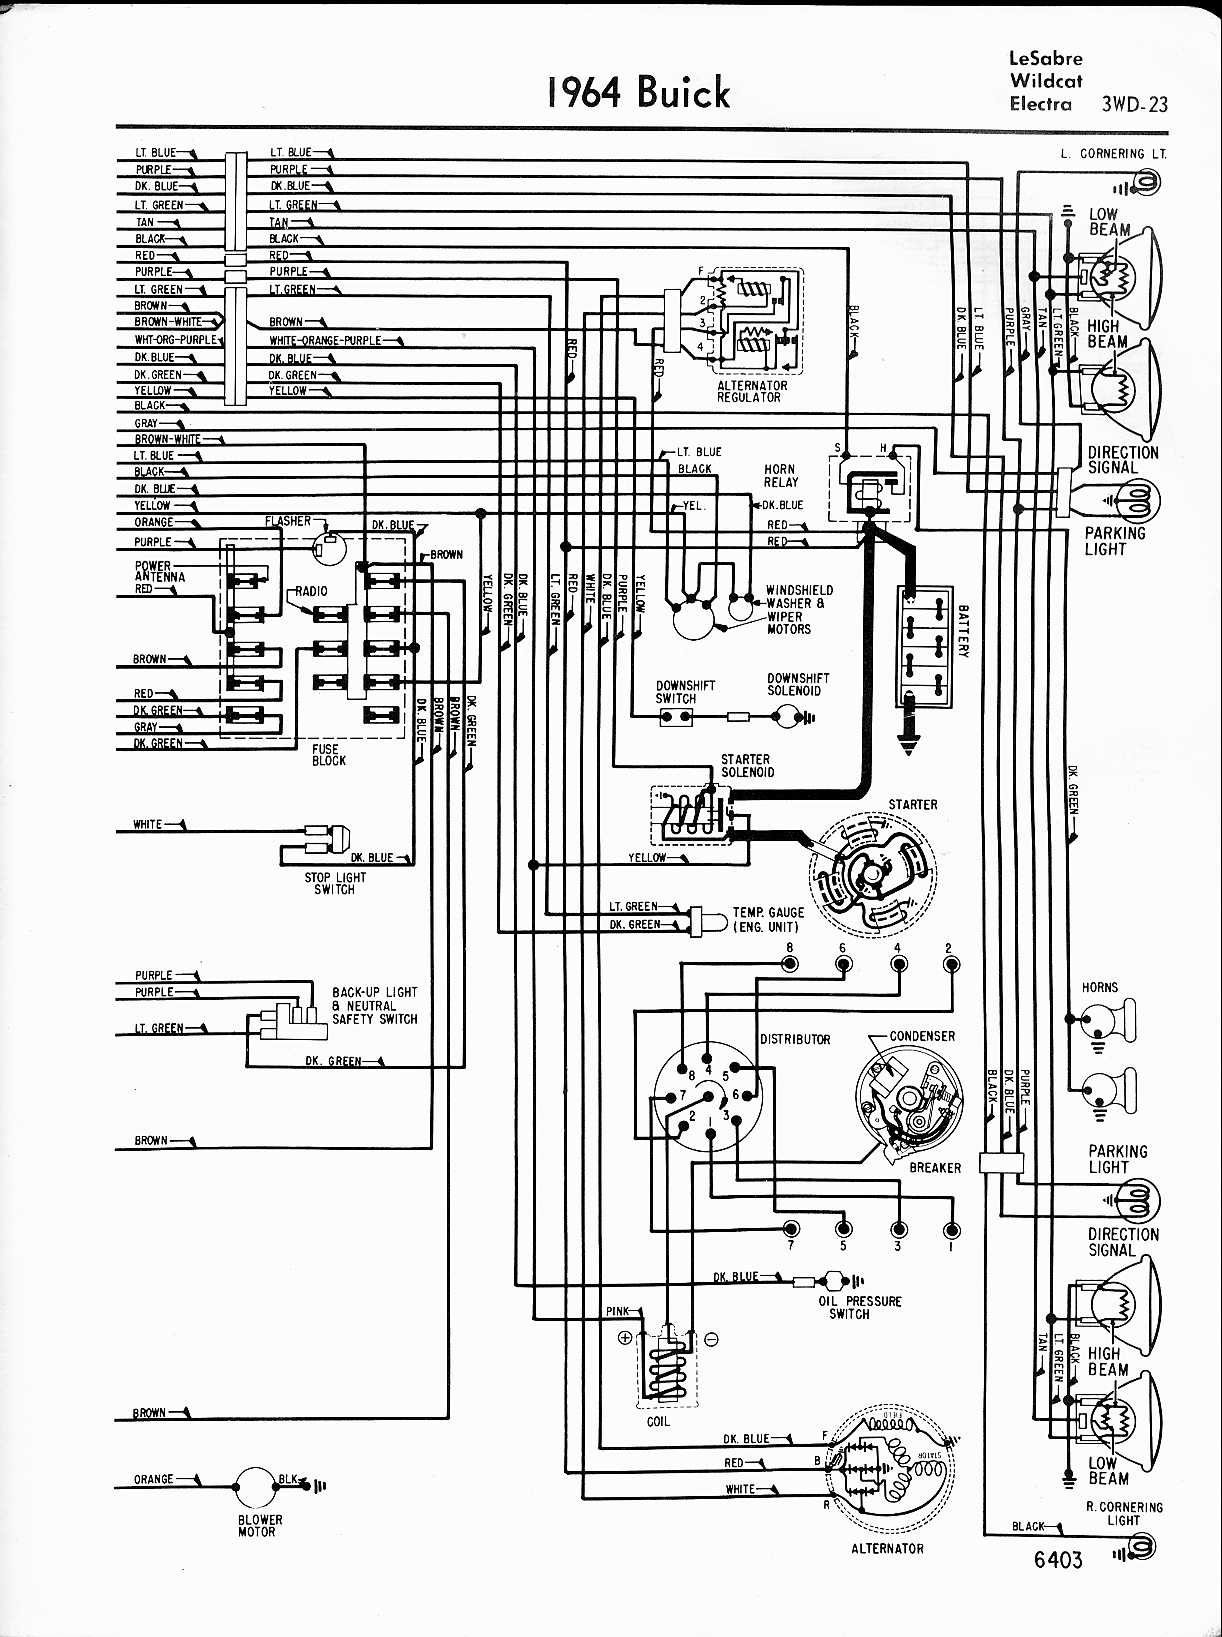 2000 Jeep Cherokee Wiring Diagram Database 2001 Grand Vacuum Line Pontiac: 2000 Jeep Grand Cherokee Ke Line Diagram At Chusao.net